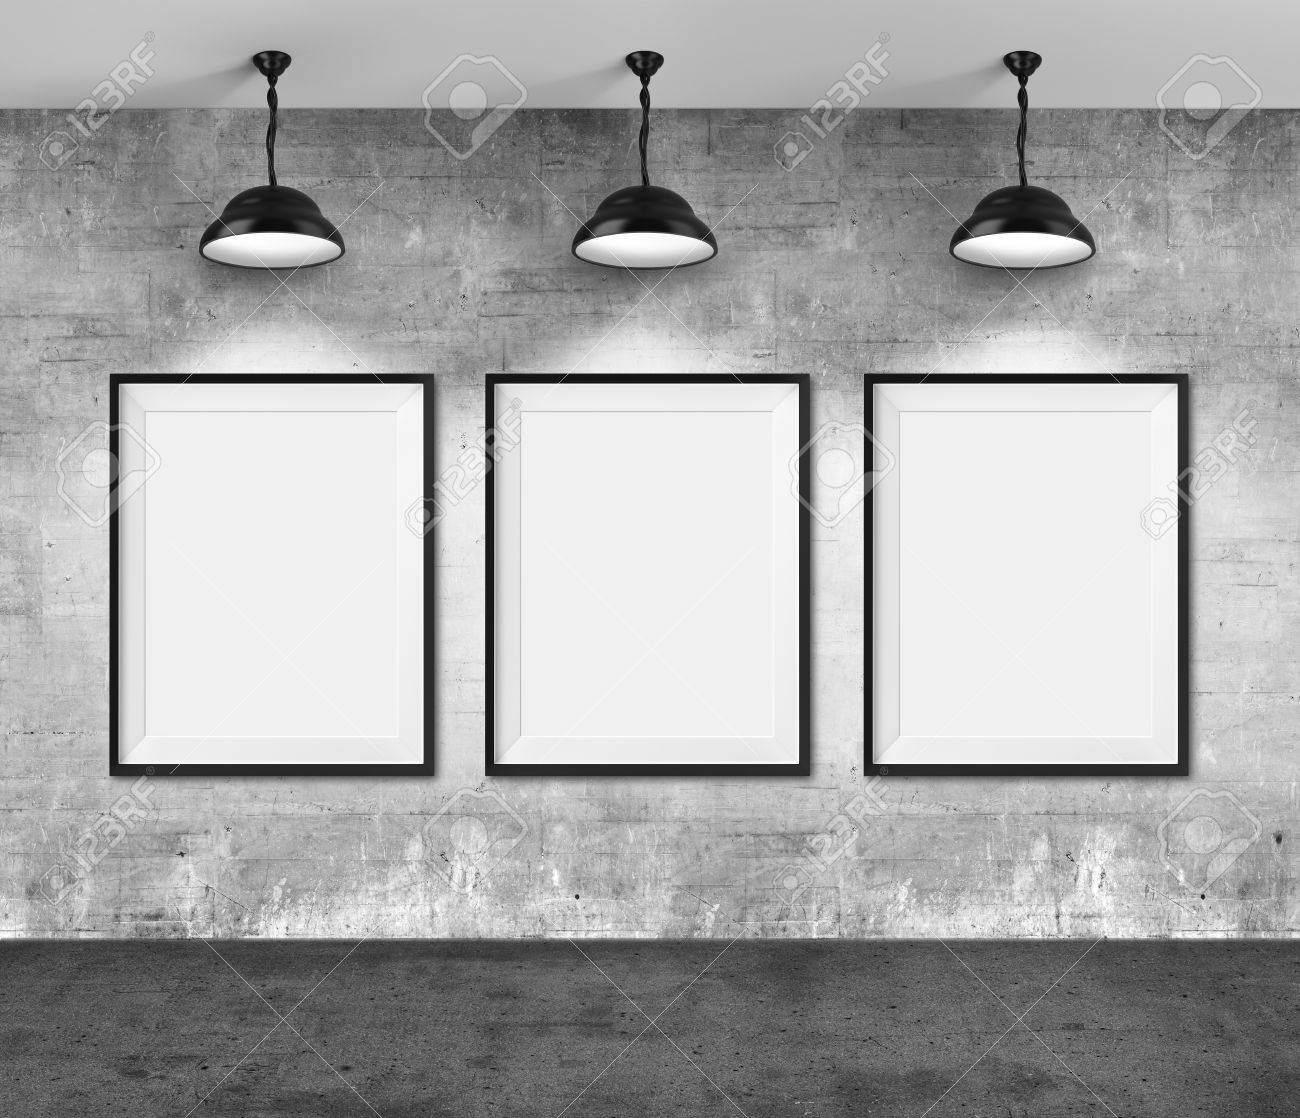 Art Gallery. Blank Picture Frames On Grunge Wall Background. Stock ...